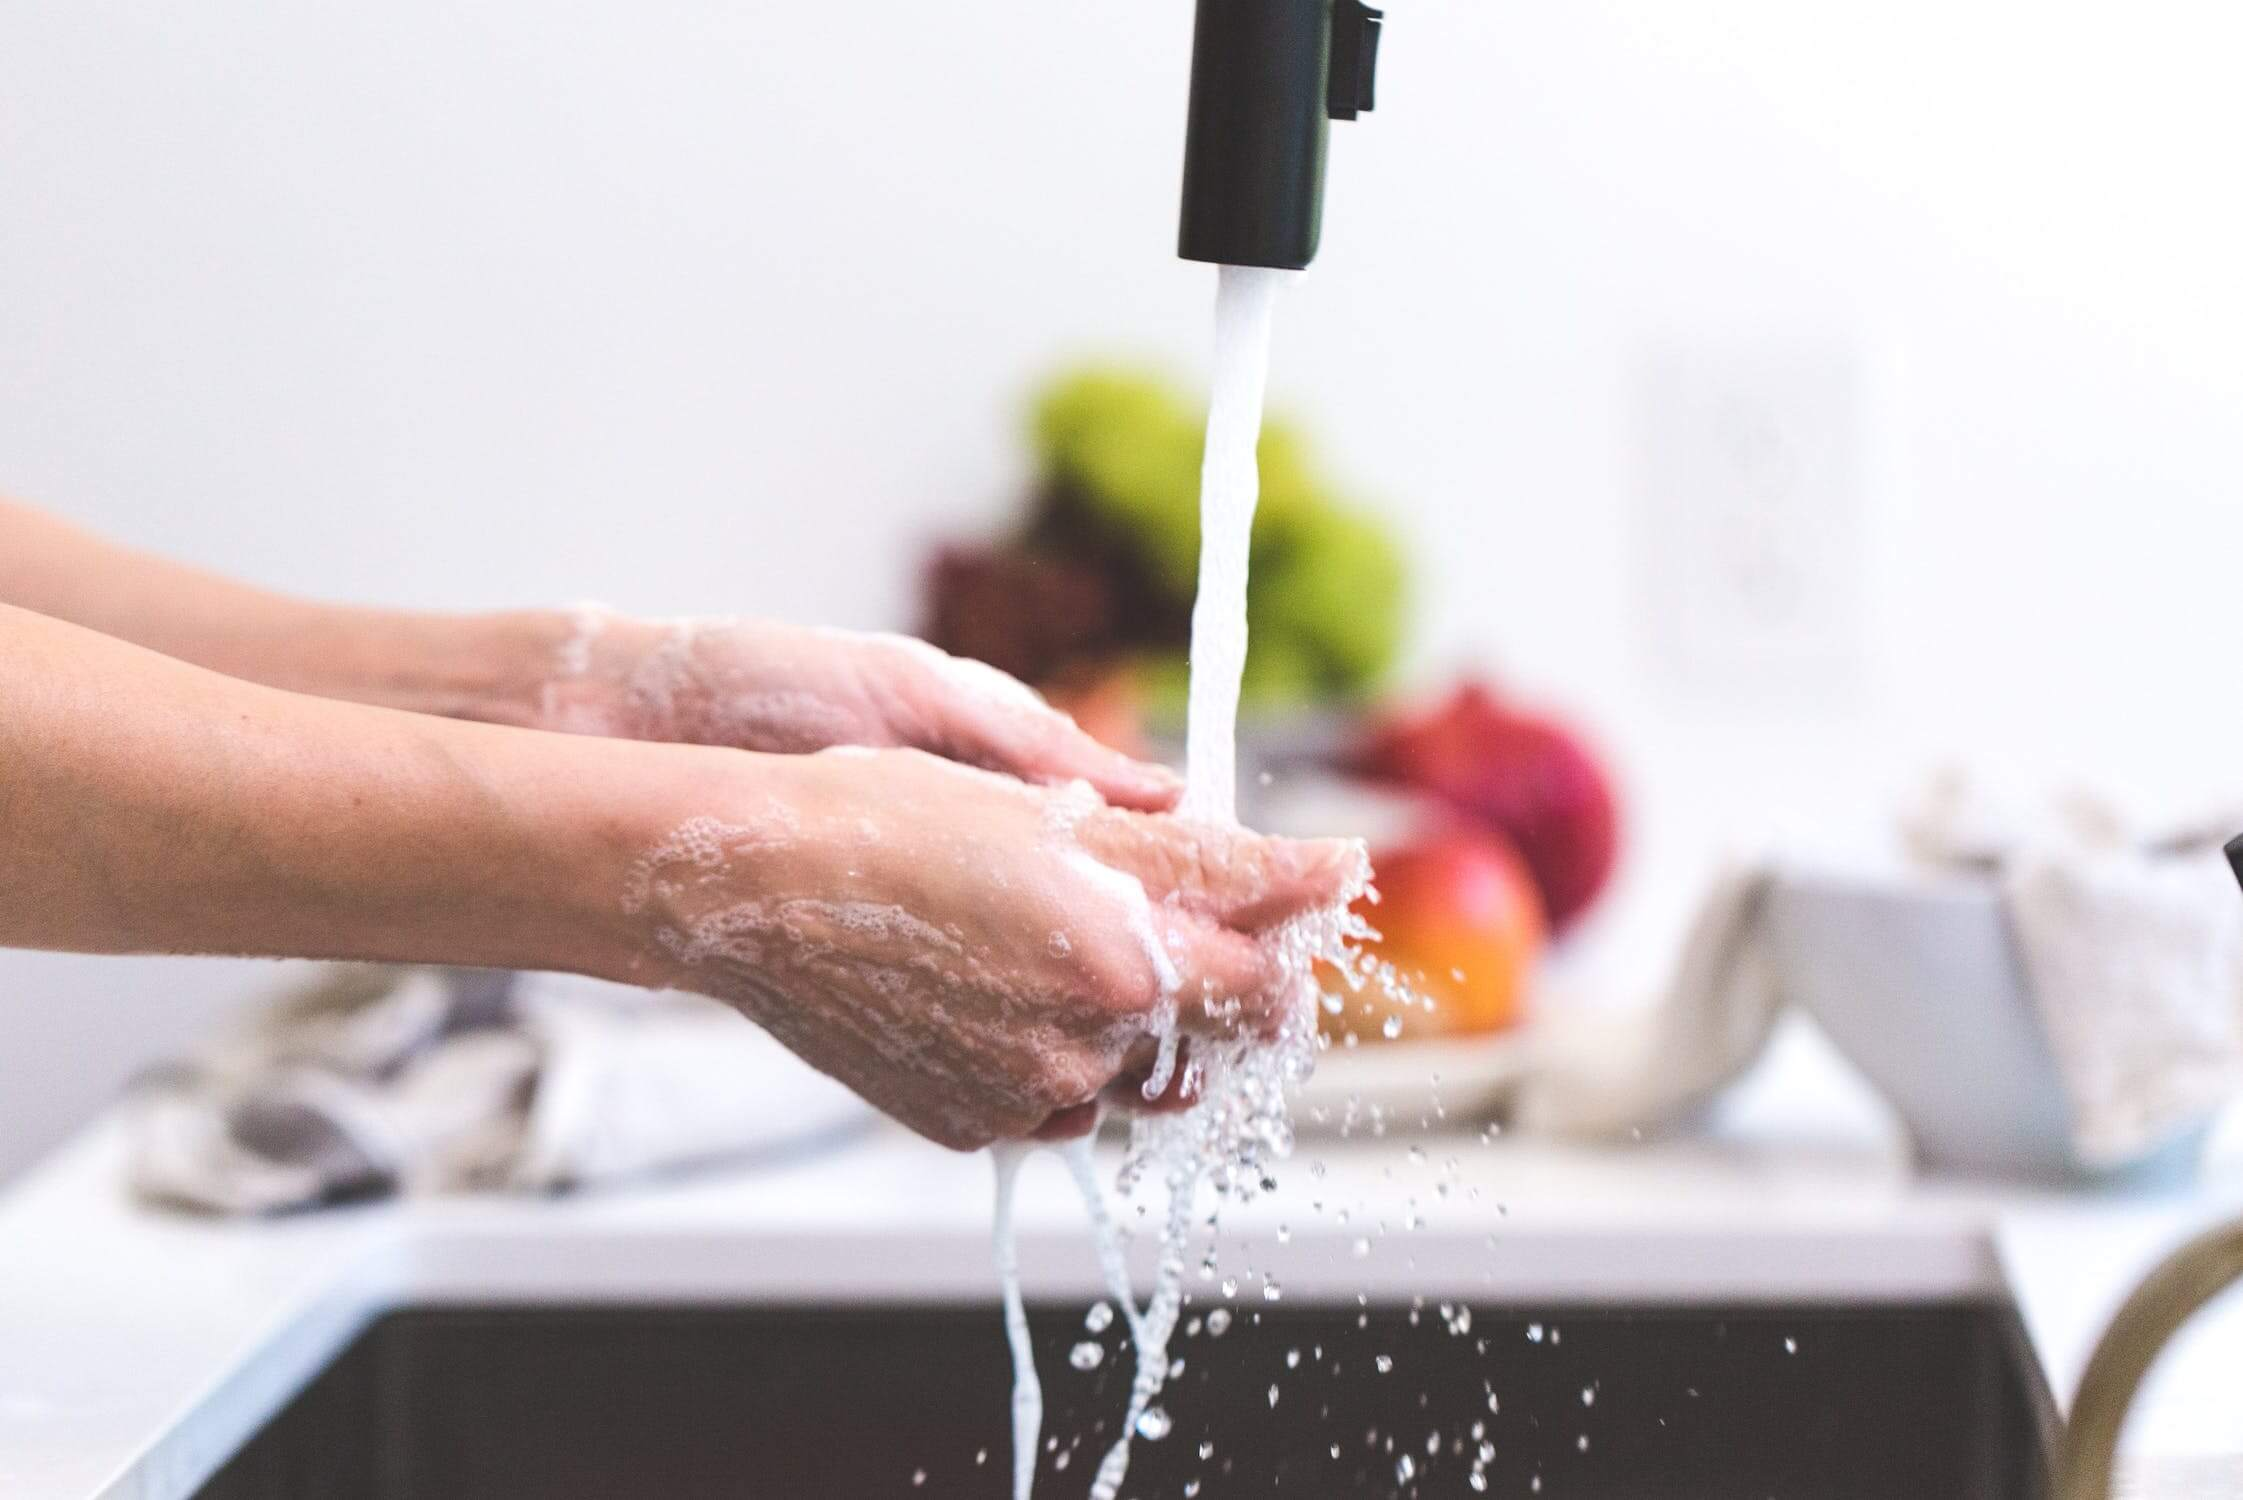 An individual washing their hands to help avoid allergies